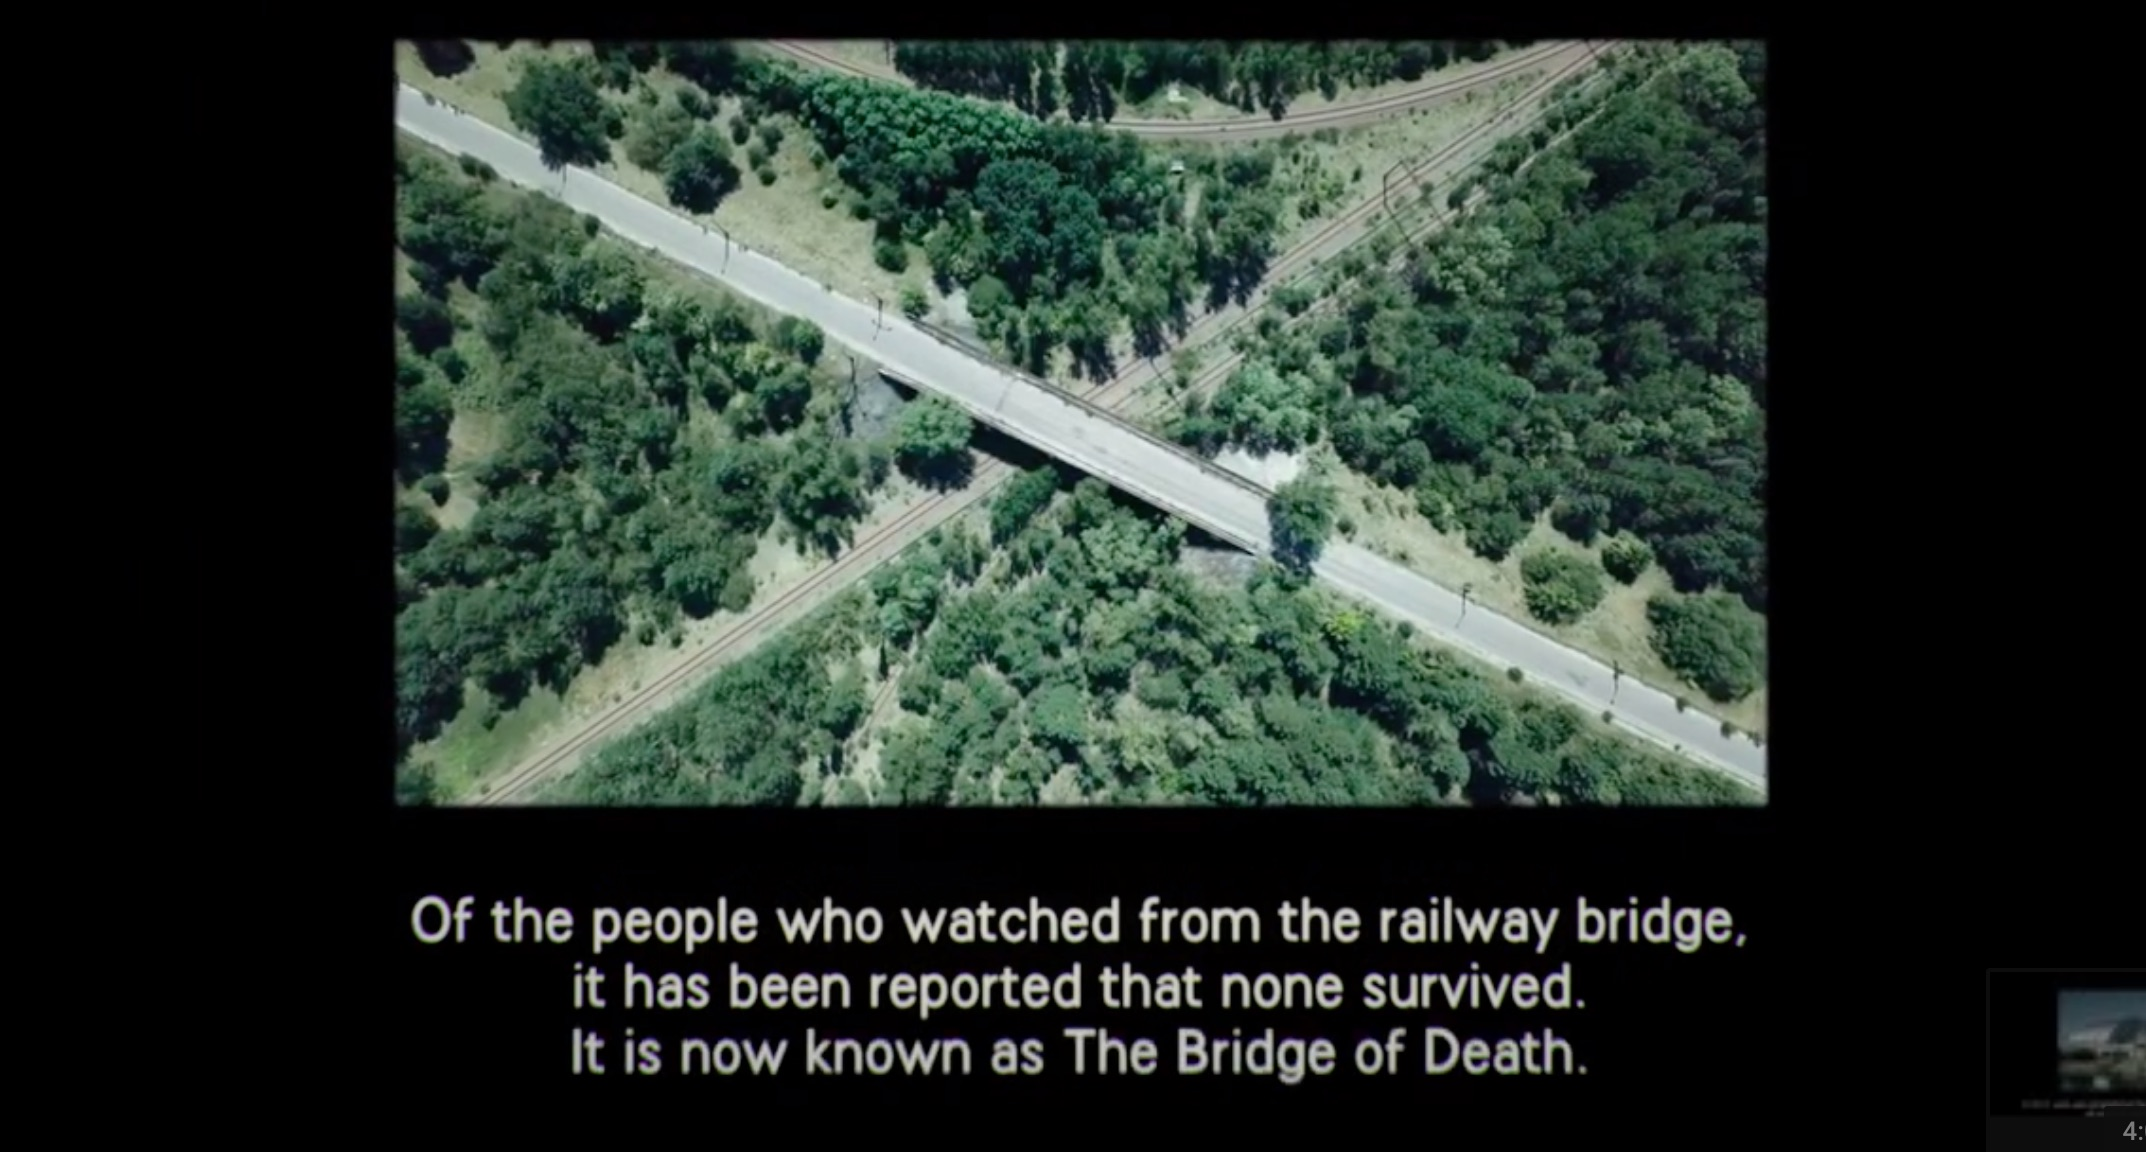 chernobyl-bridge-of-death-hbo